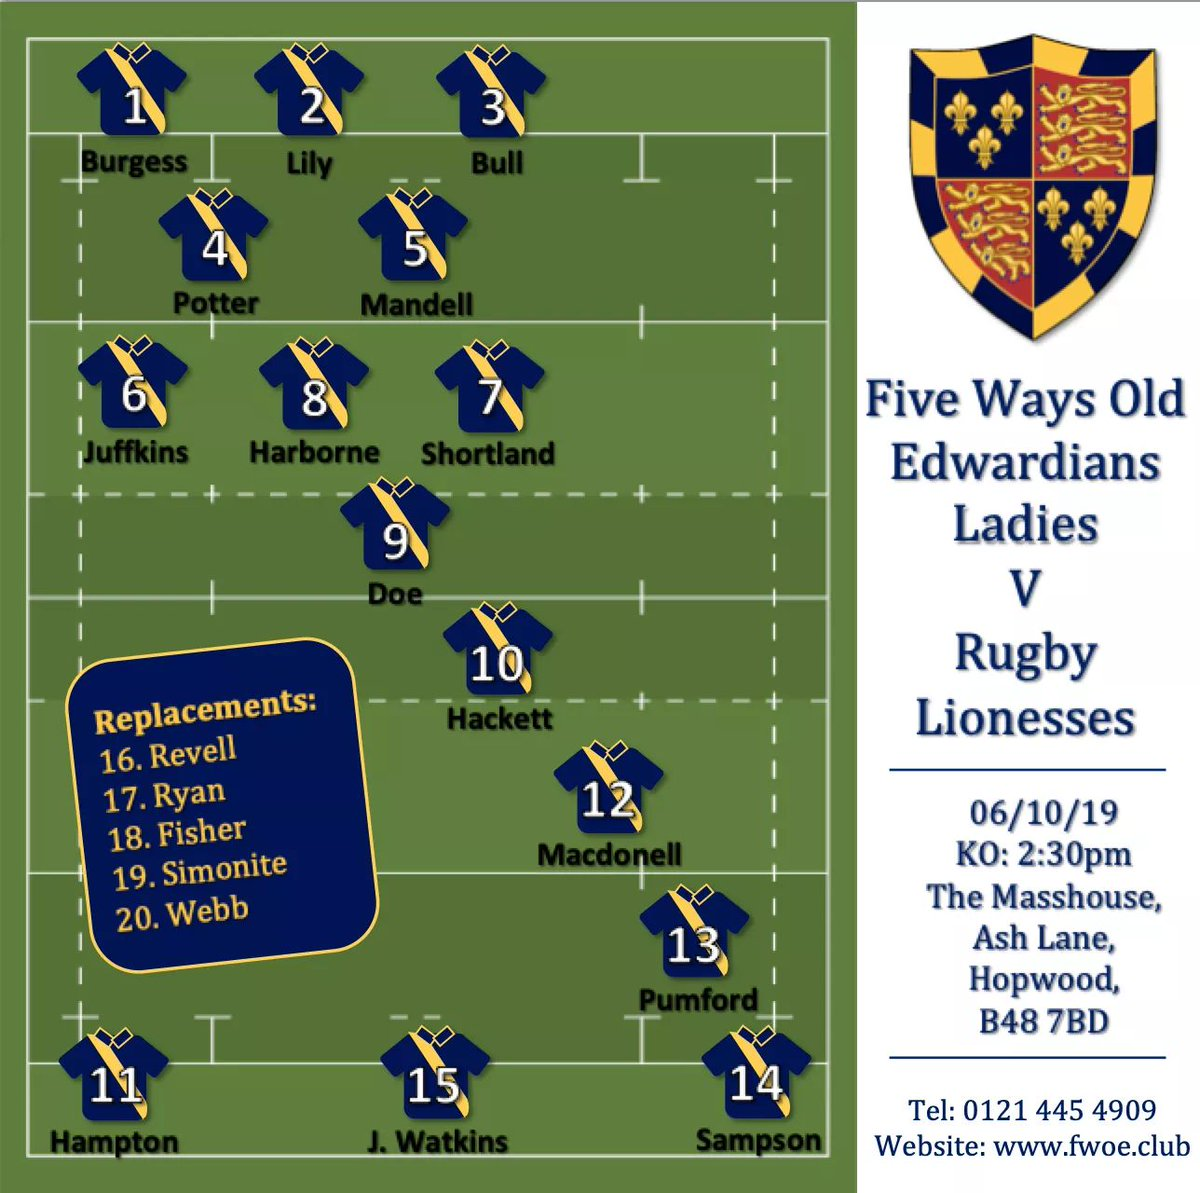 1st home game of the season 💙💛🏉 #womensrugby #rugbysisters #eggchasers #thisgirlcan #innerwarrior